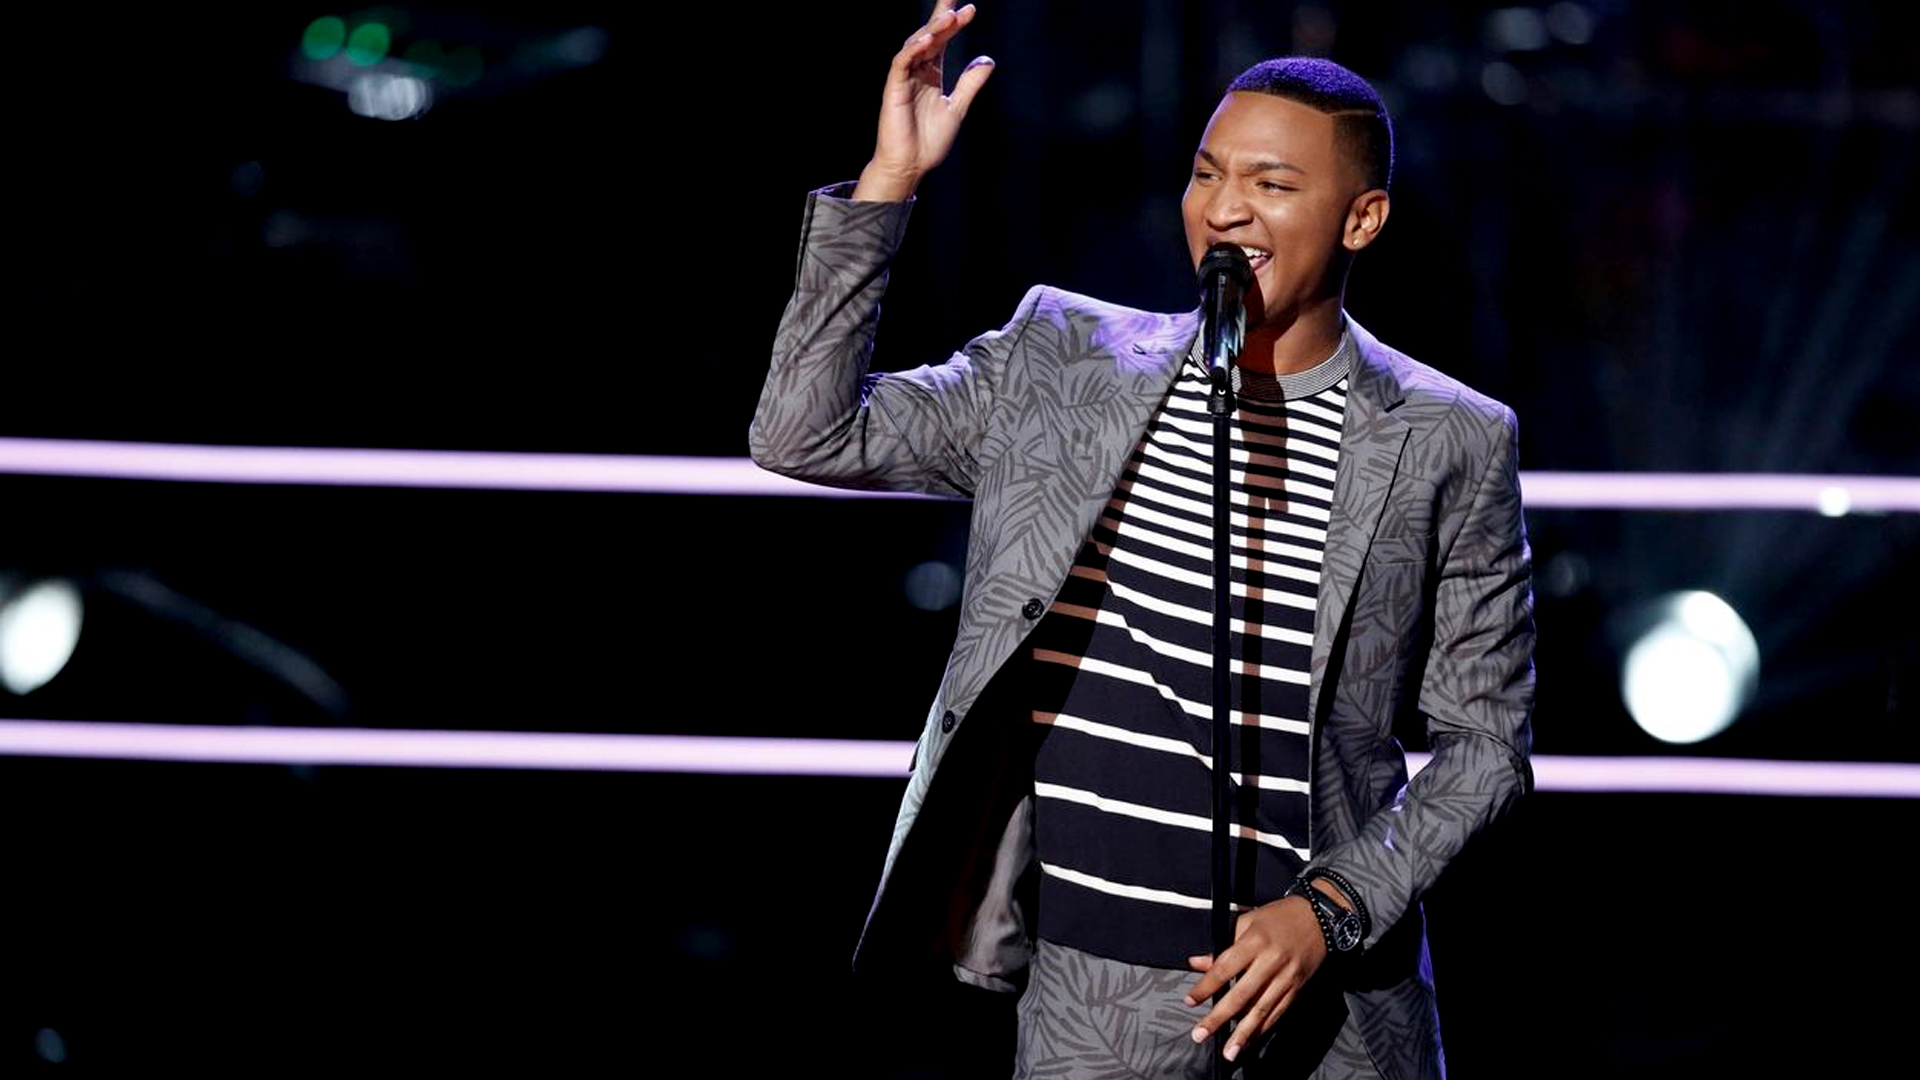 """Battle Round of Eric Lyn vs. Ignatious Carmouche """"Unaware"""" in the Voice 2017 Season 13 on 24 October 2017"""